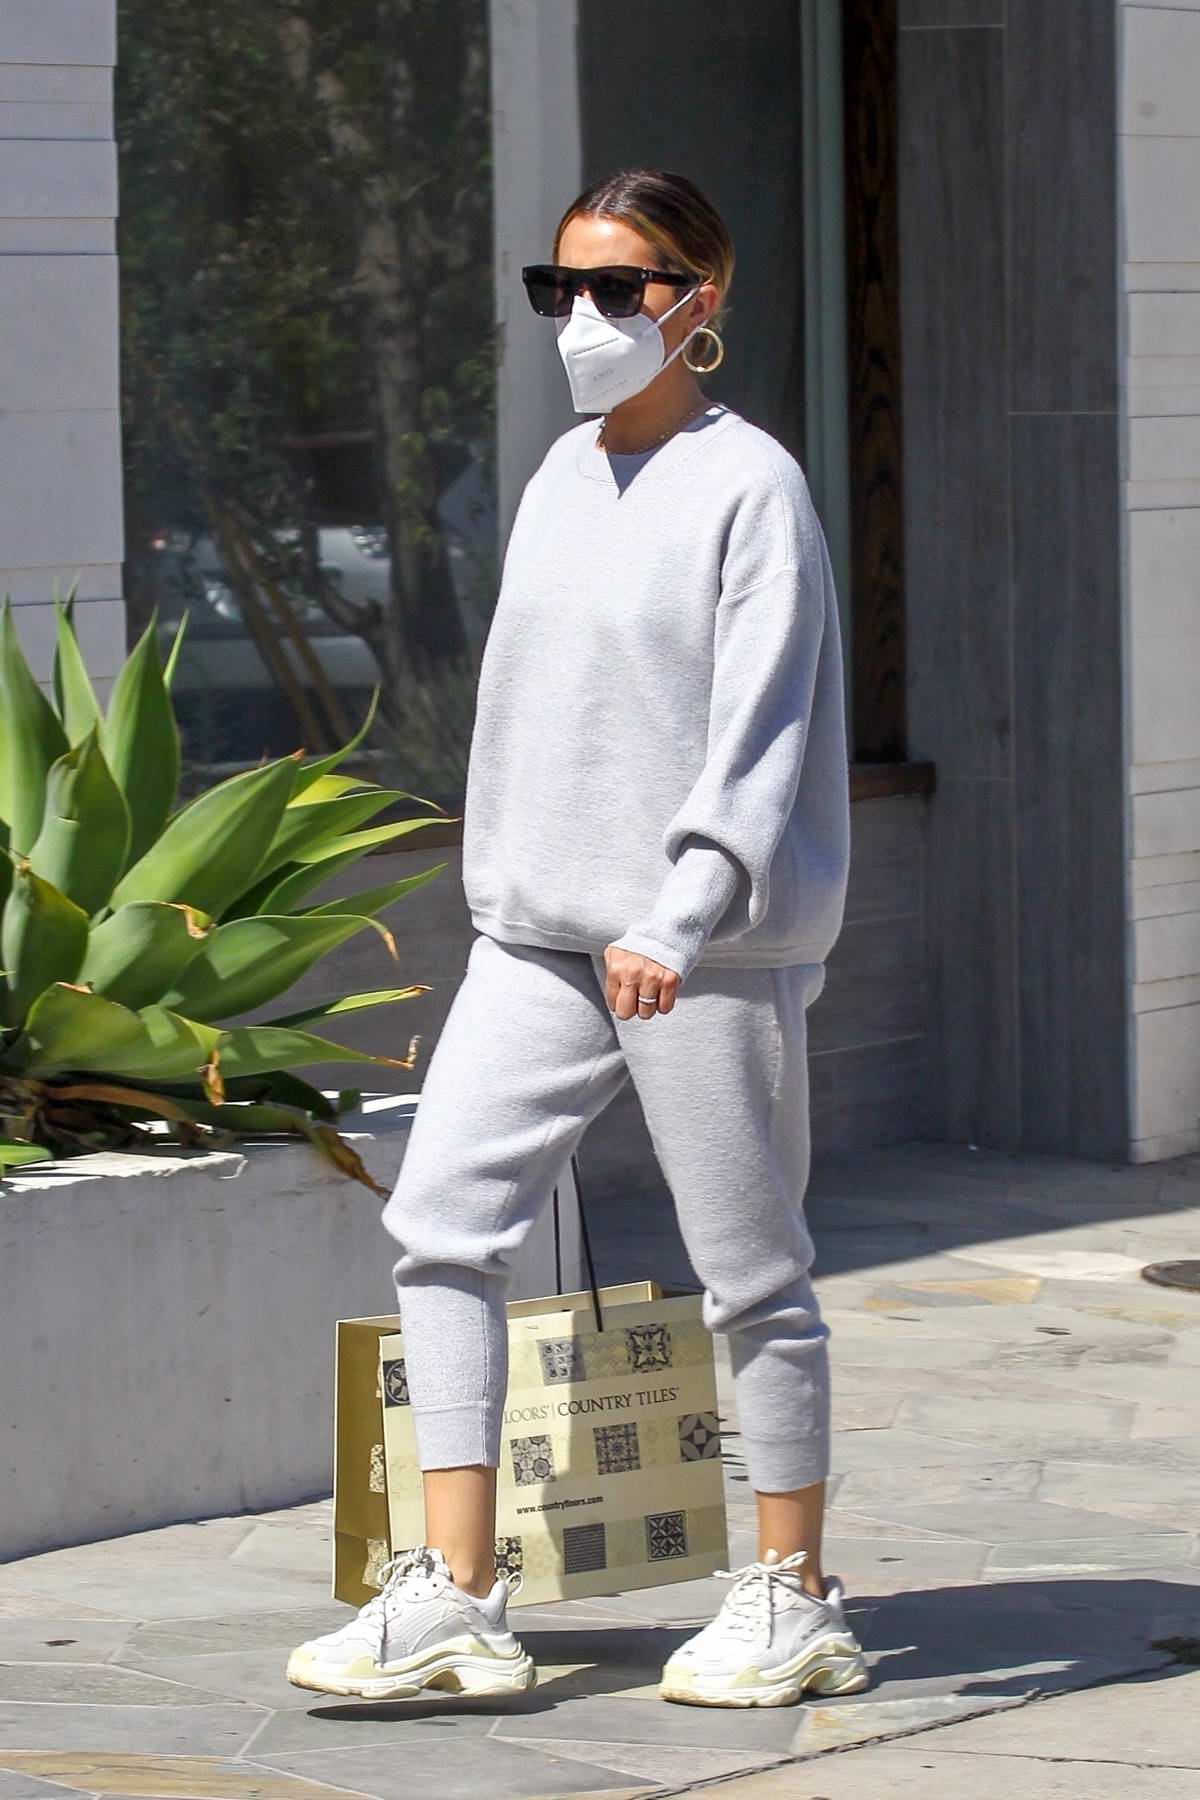 Ashley Tisdale dons grey sweatsuit while out shopping in Beverly Hills, California